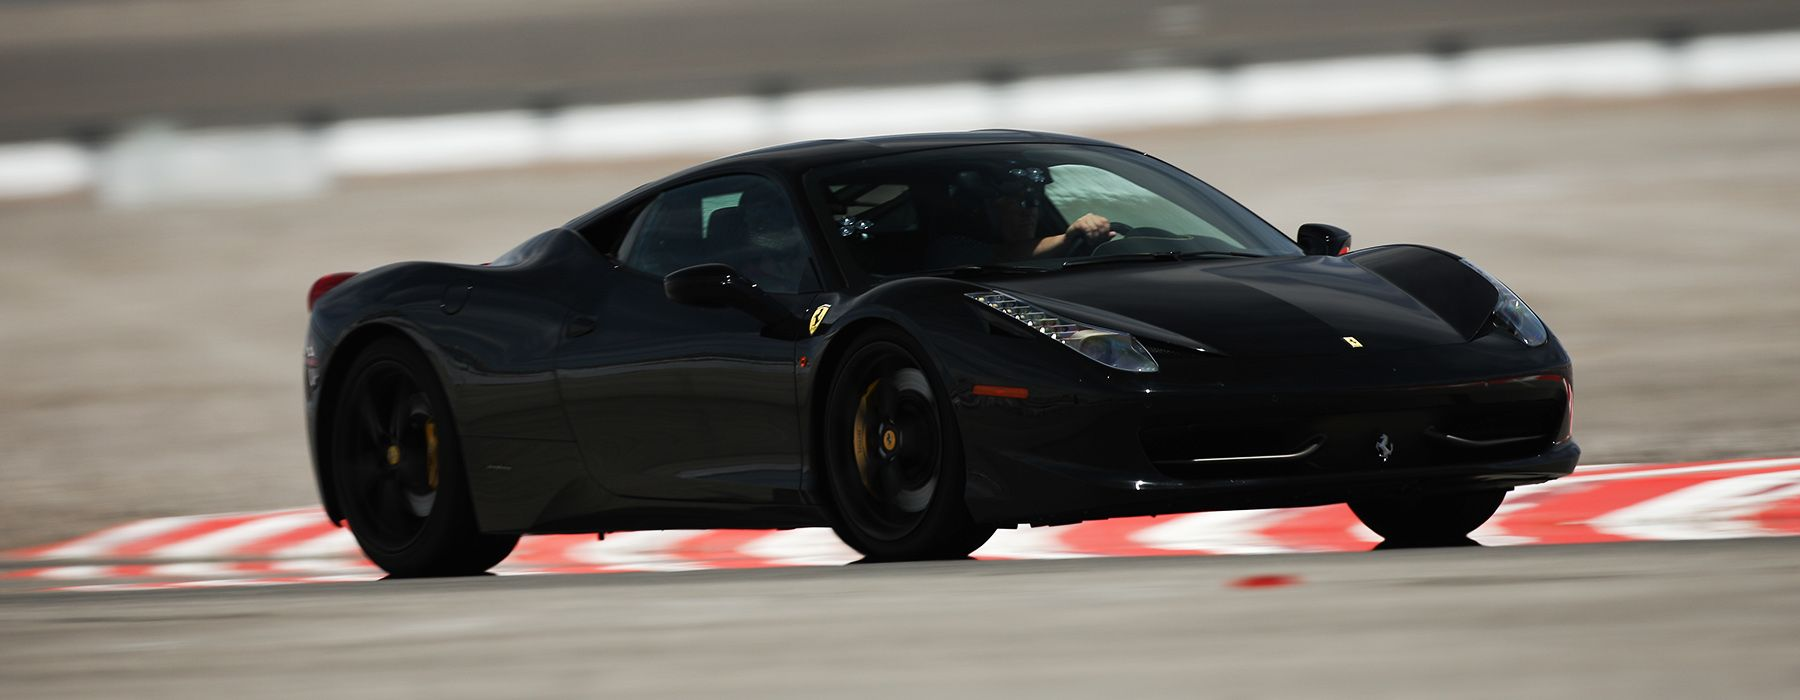 Drive a Ferrari Supercar on a Professional Racetrack with Exotics Racing